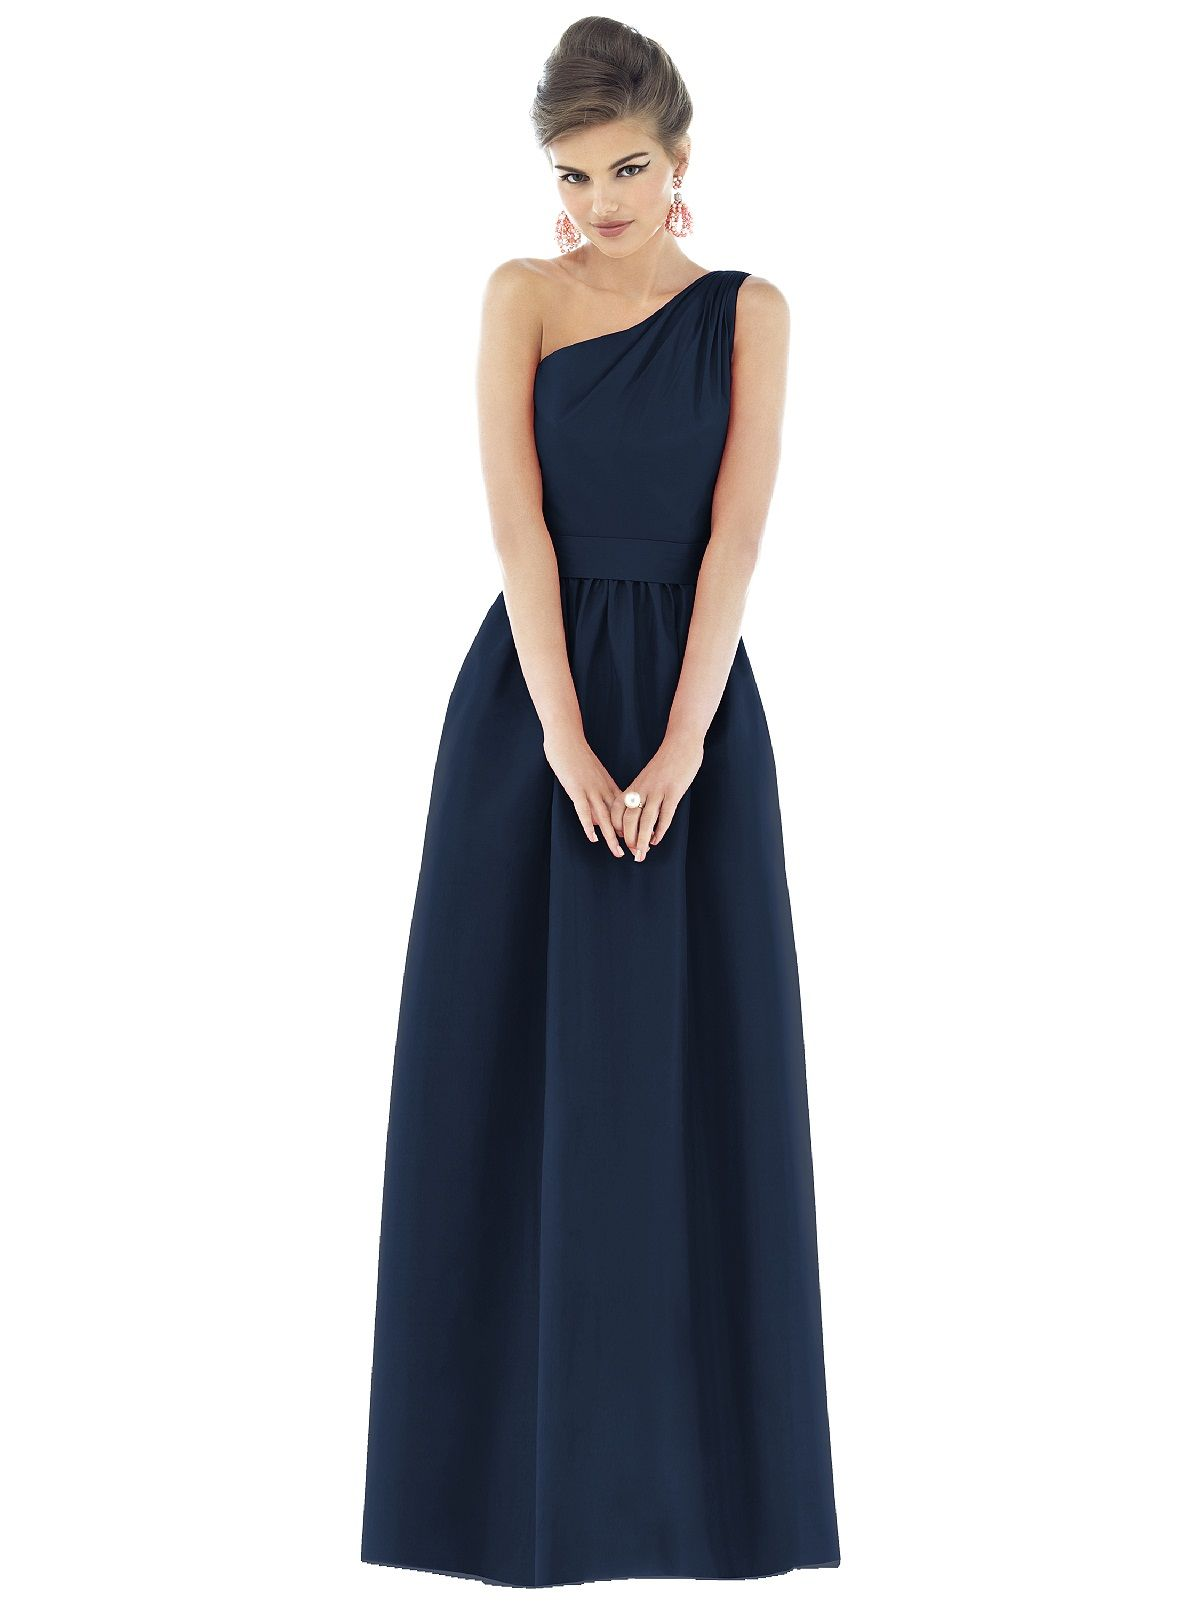 Alfred sung style d midnight blue blue dresses and alfred sung